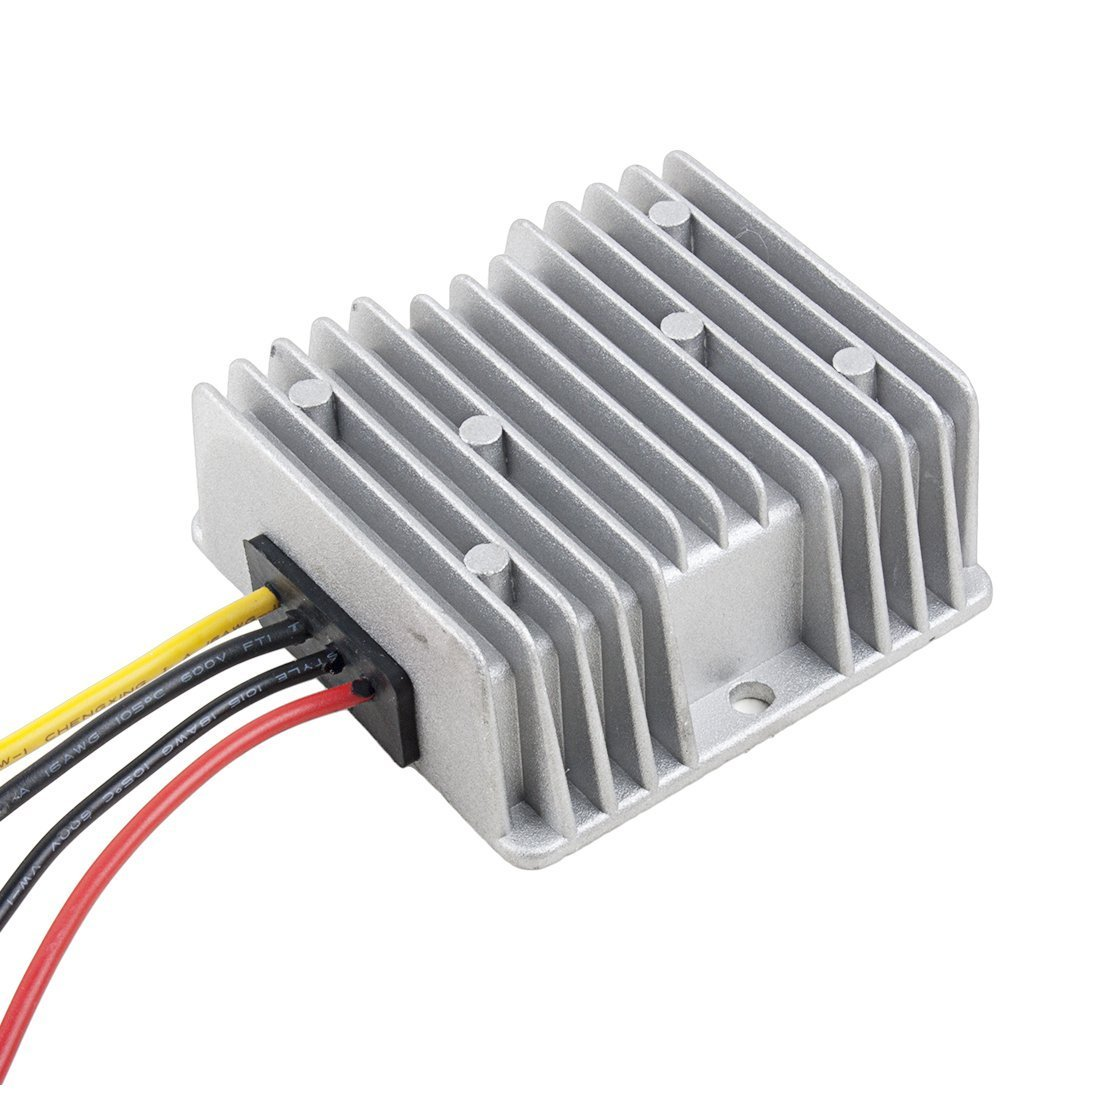 JahyShow Waterproof DC 36V (30V-50V) to DC 12V 10A 120W Car Power Supply Module Voltage Converter Regulator Electronic Transformer by JahyShow (Image #1)